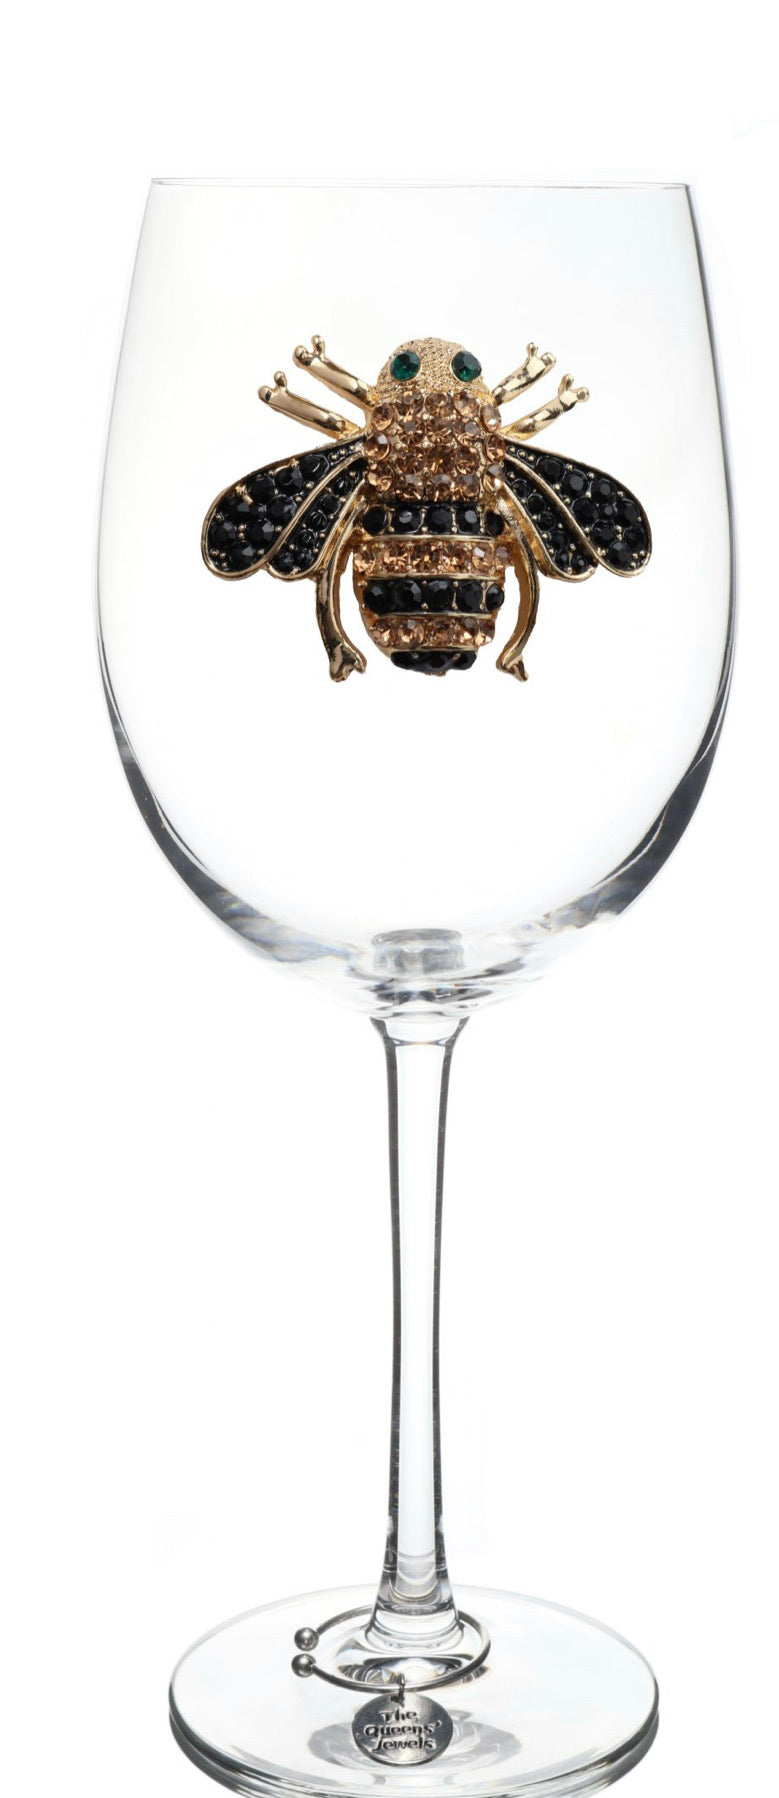 The Queens' Jewels Stemmed Bee Wine Glass